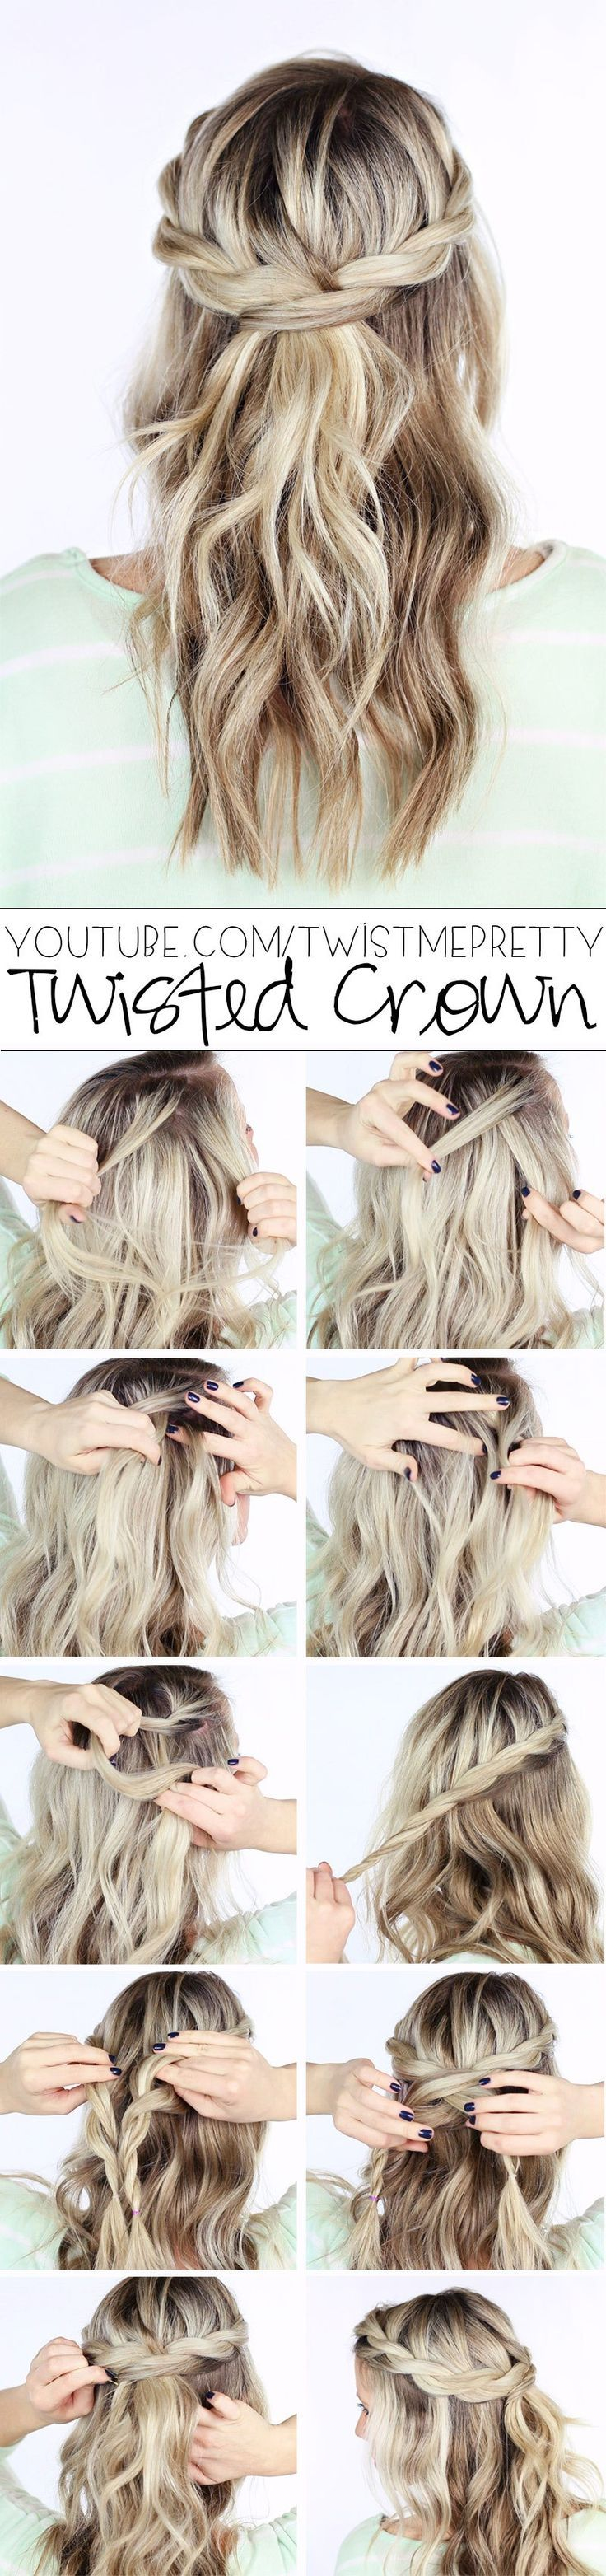 68 best Hairstyle Tutorials images on Pinterest